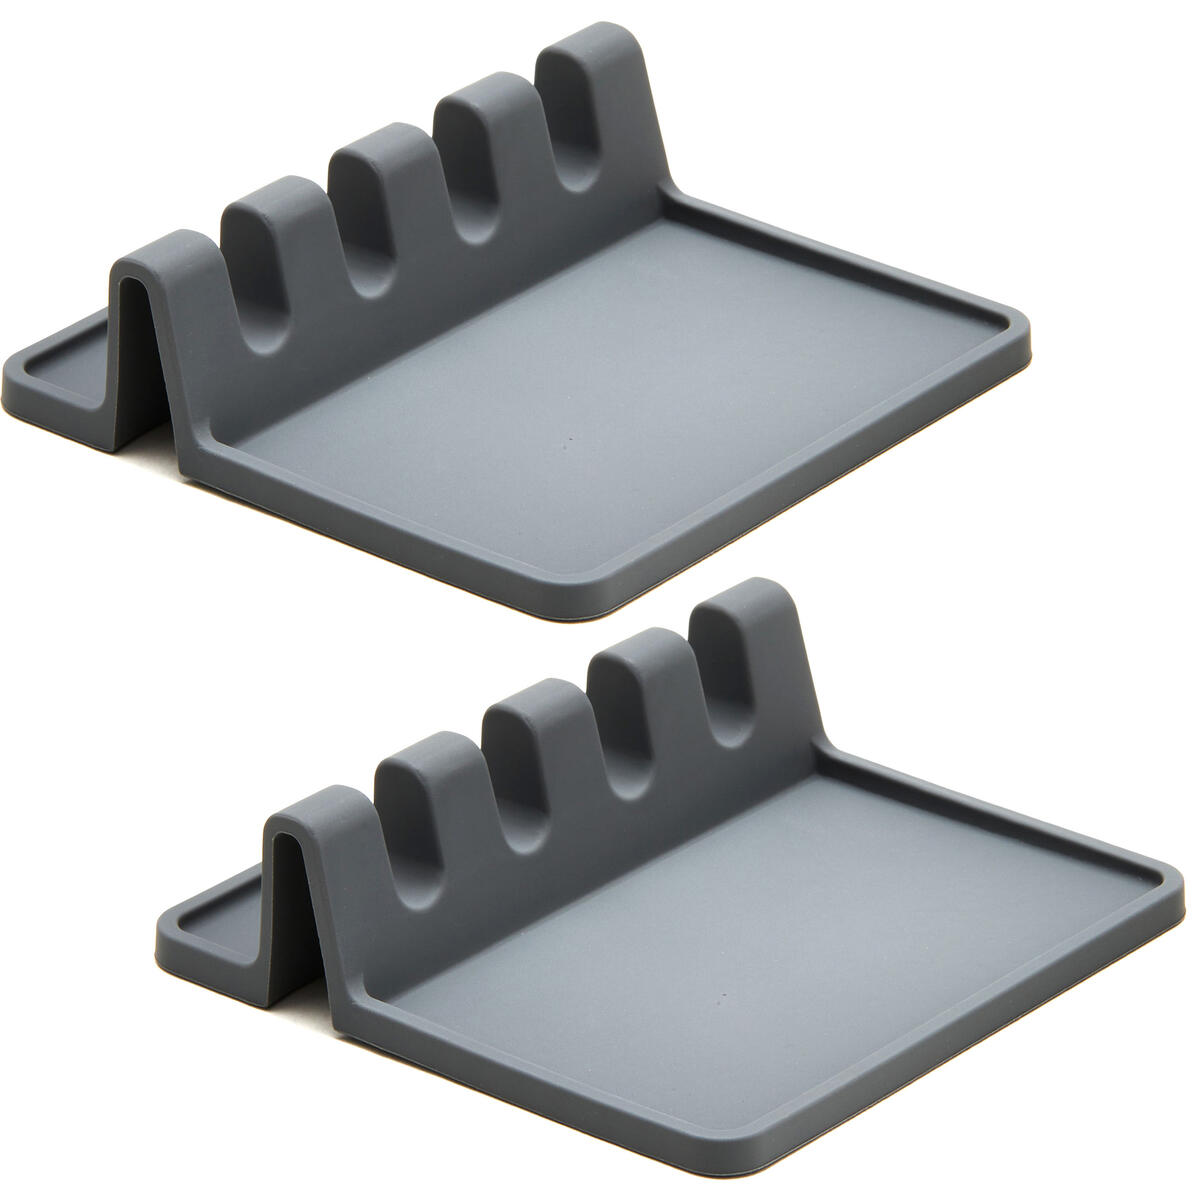 Silicone Spoon Rest for Stove Top with Drip Pad (Two Pack) - Heat-Resistant, BPA-Free Utensil Rest & Spoon Holder for Kitchen Counter - Grill Utensil Holder for Spatulas, Tongs, Ladles   + Link Amz Calc Reviews Links  Rank:  N/A (see most recent revi